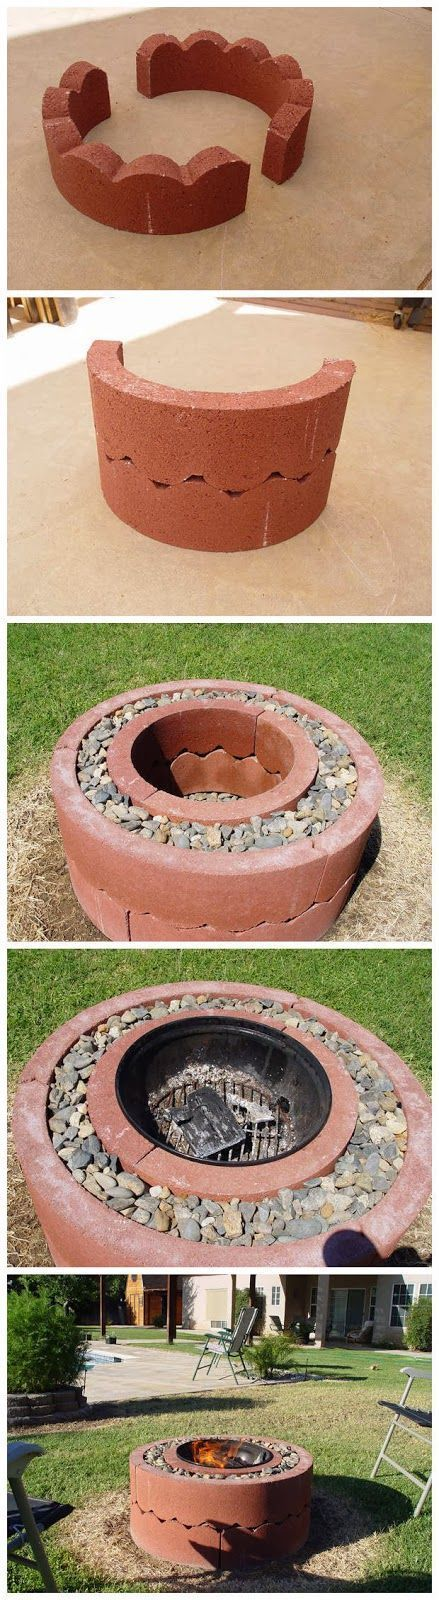 $50 fire pit using concrete tree rings...